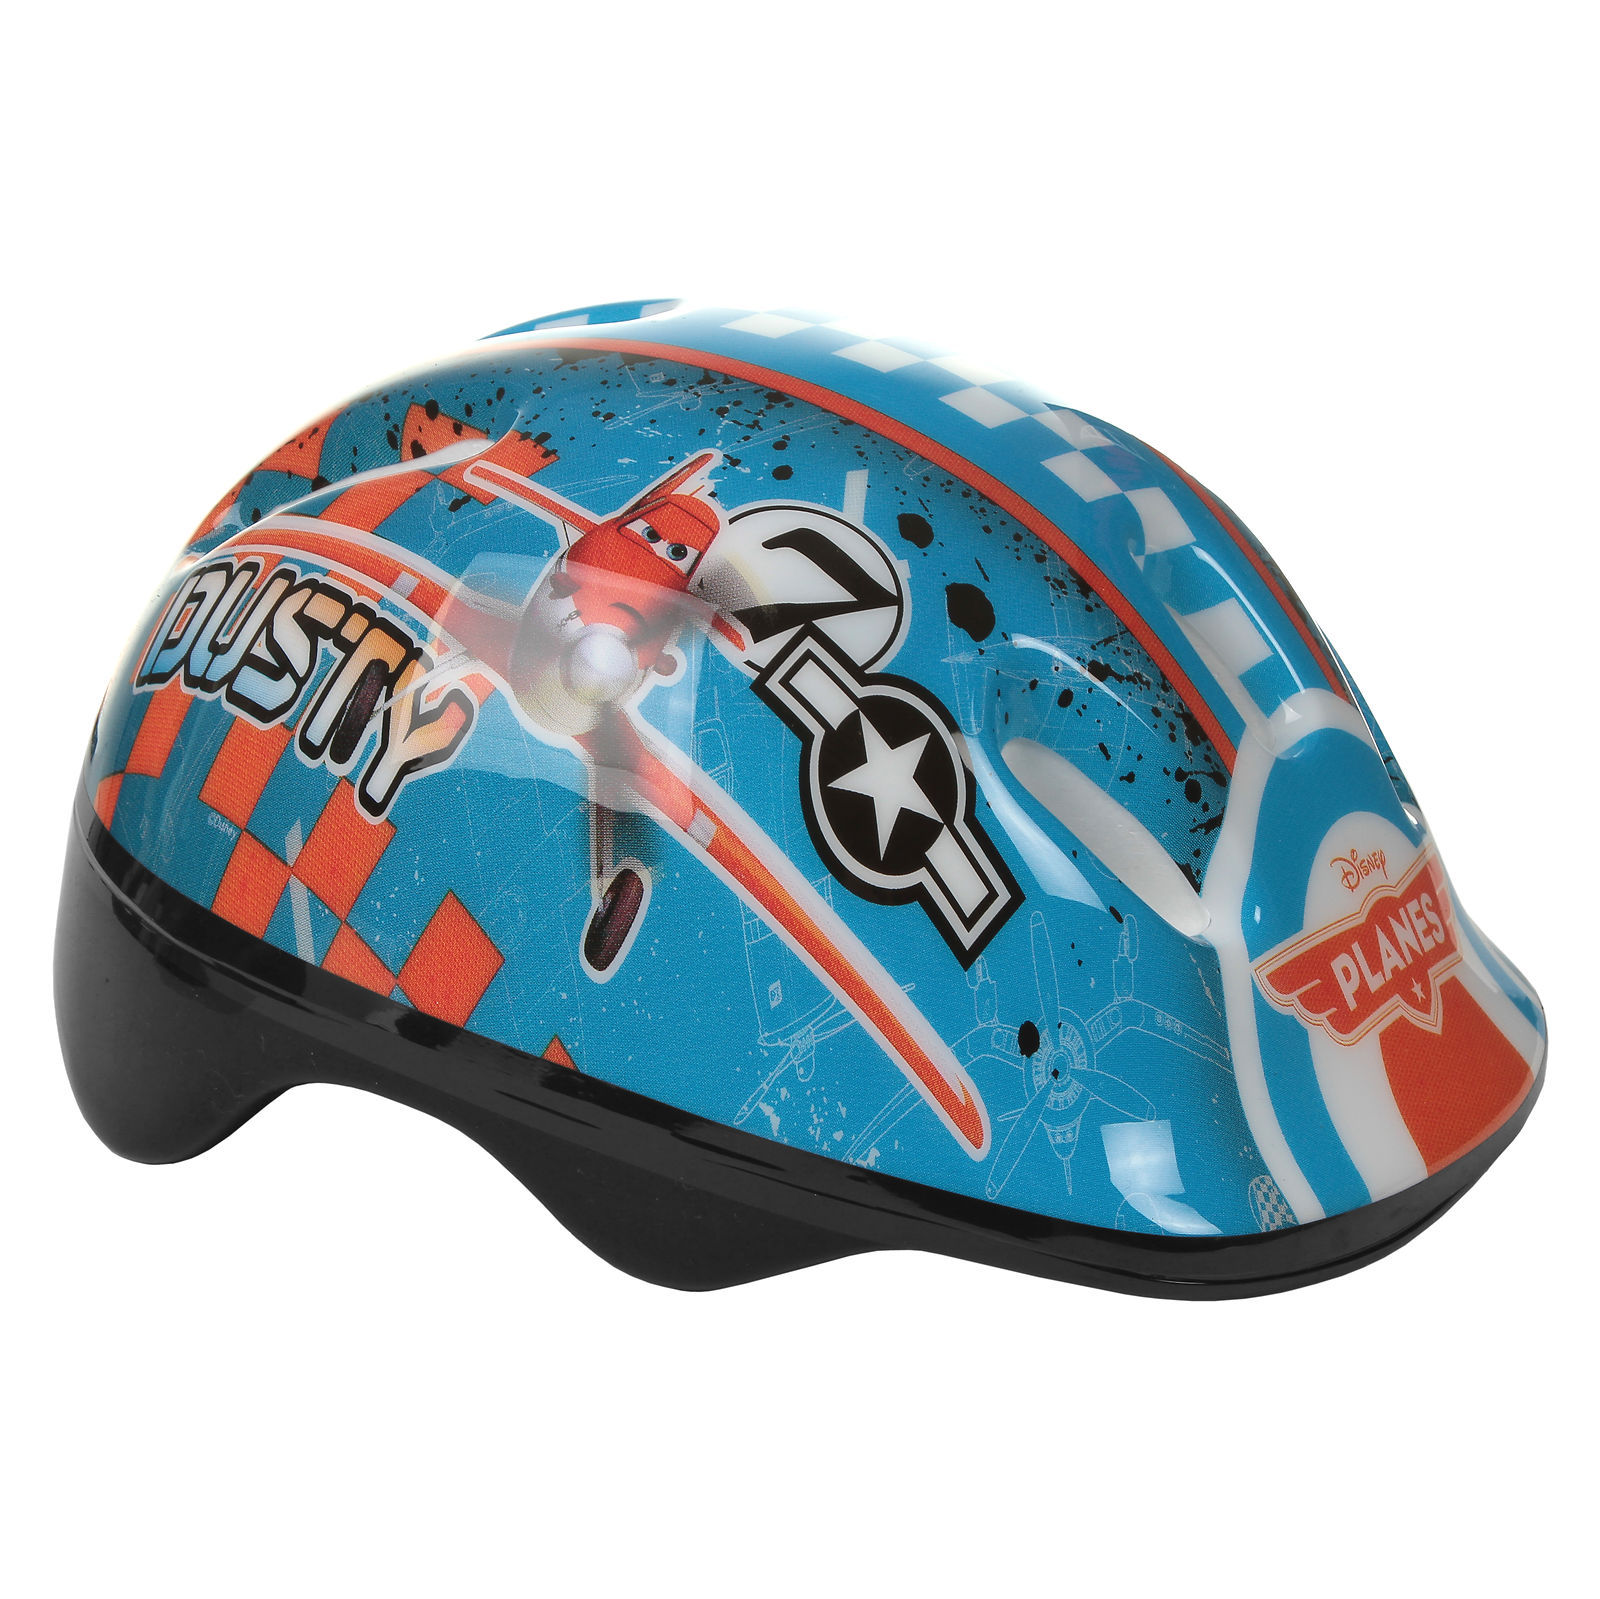 Kask Vision Planes